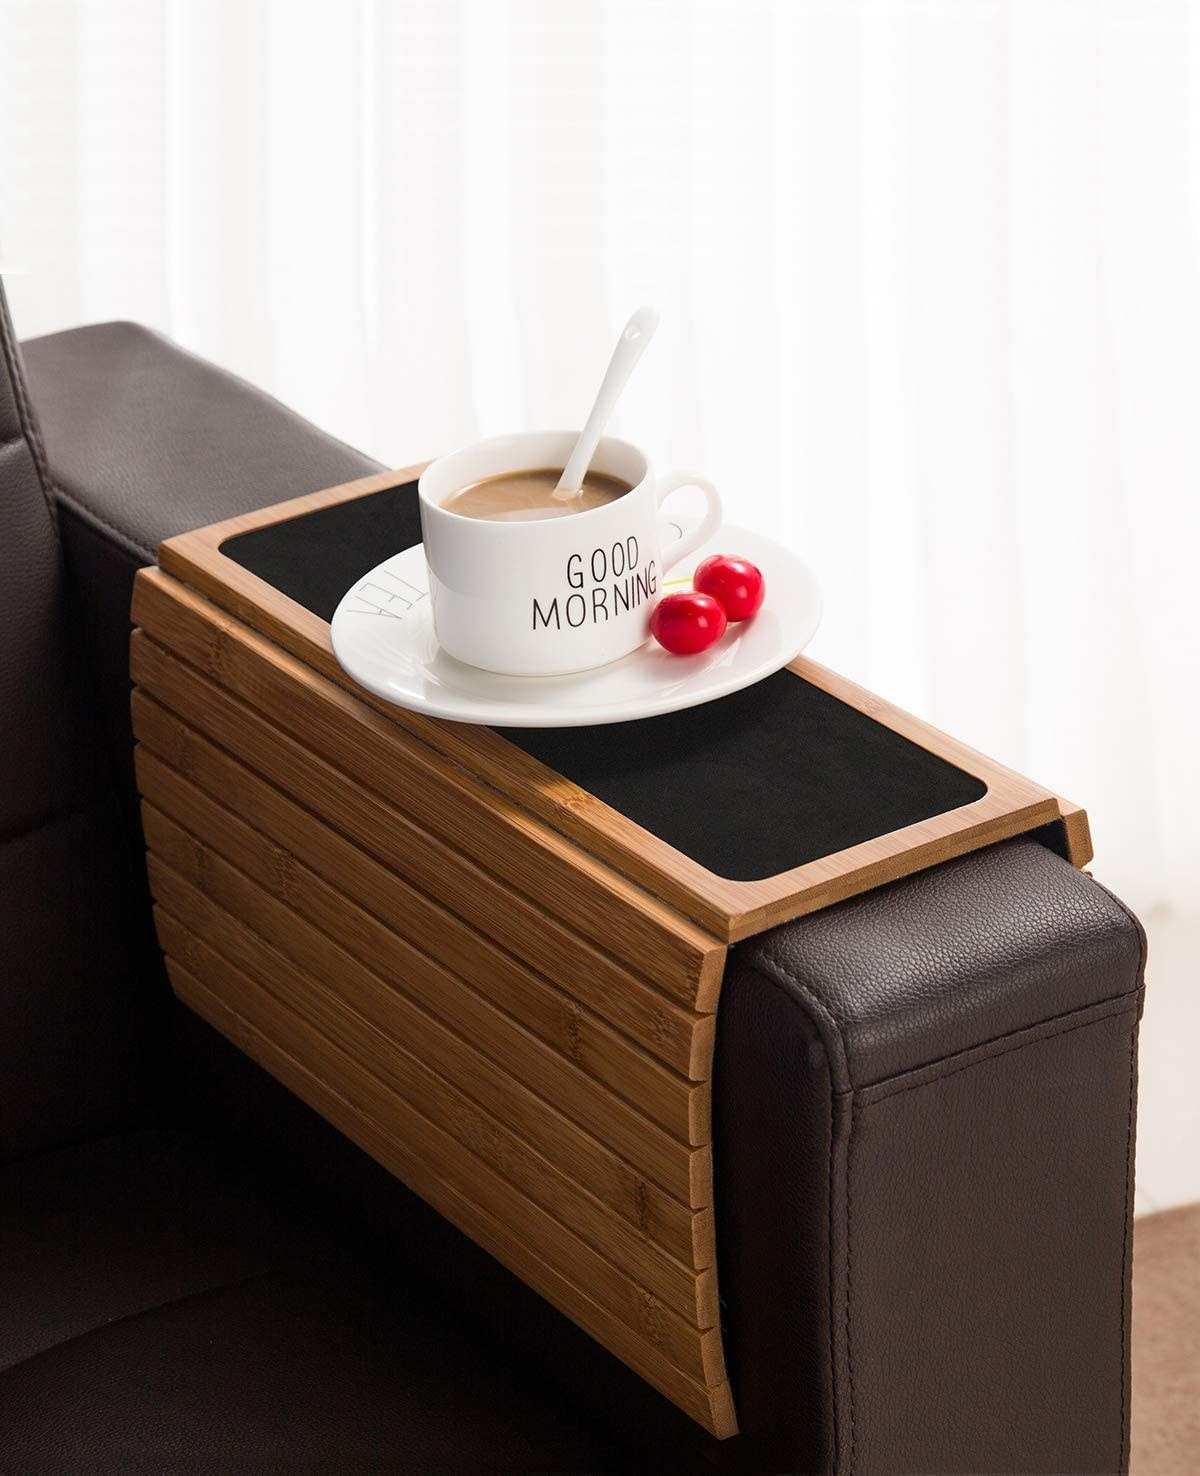 The coaster draped over the edge of a sofa with a teacup and saucer on top